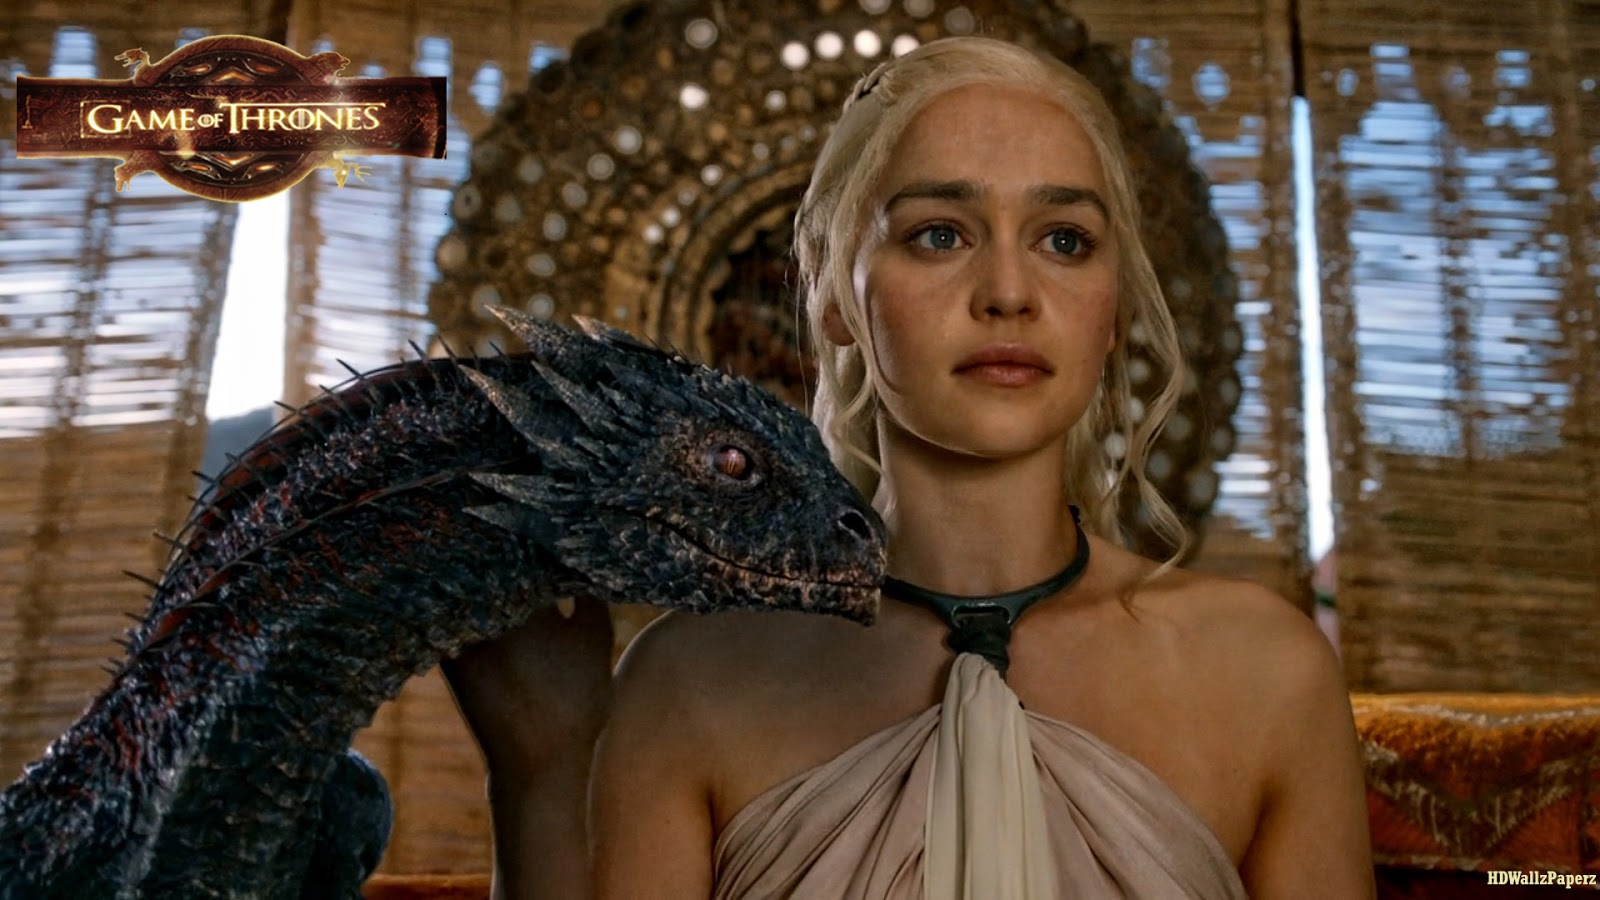 Emilia Clarke Game Of Thrones Wallpaper: HD Wallpapers